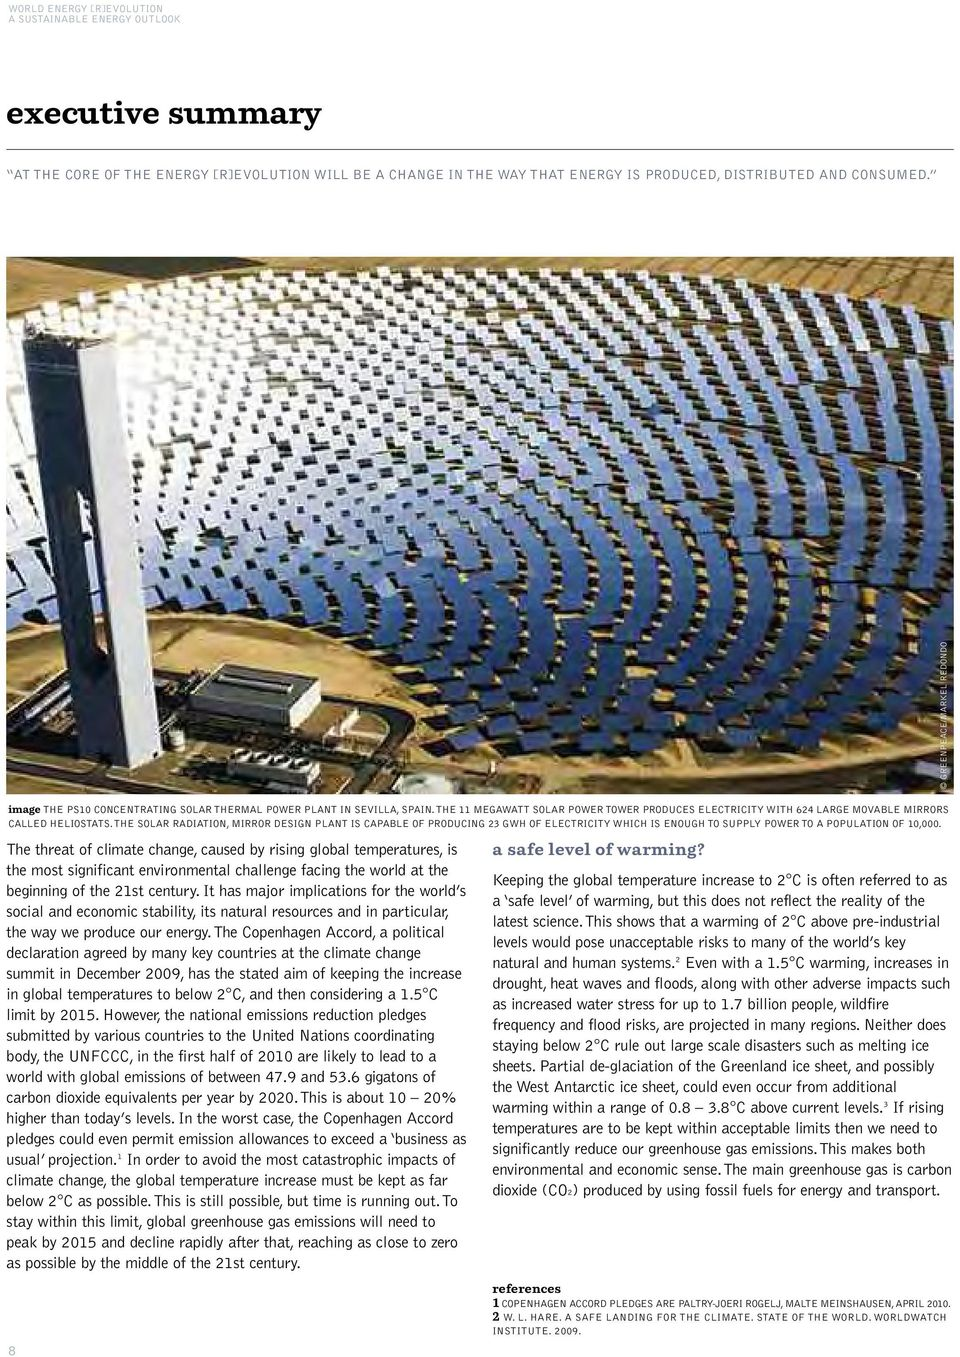 THE SOLAR RADIATION, MIRROR DESIGN PLANT IS CAPABLE OF PRODUCING GWH OF ELECTRICITY WHICH IS ENOUGH TO SUPPLY POWER TO A POPULATION OF,.